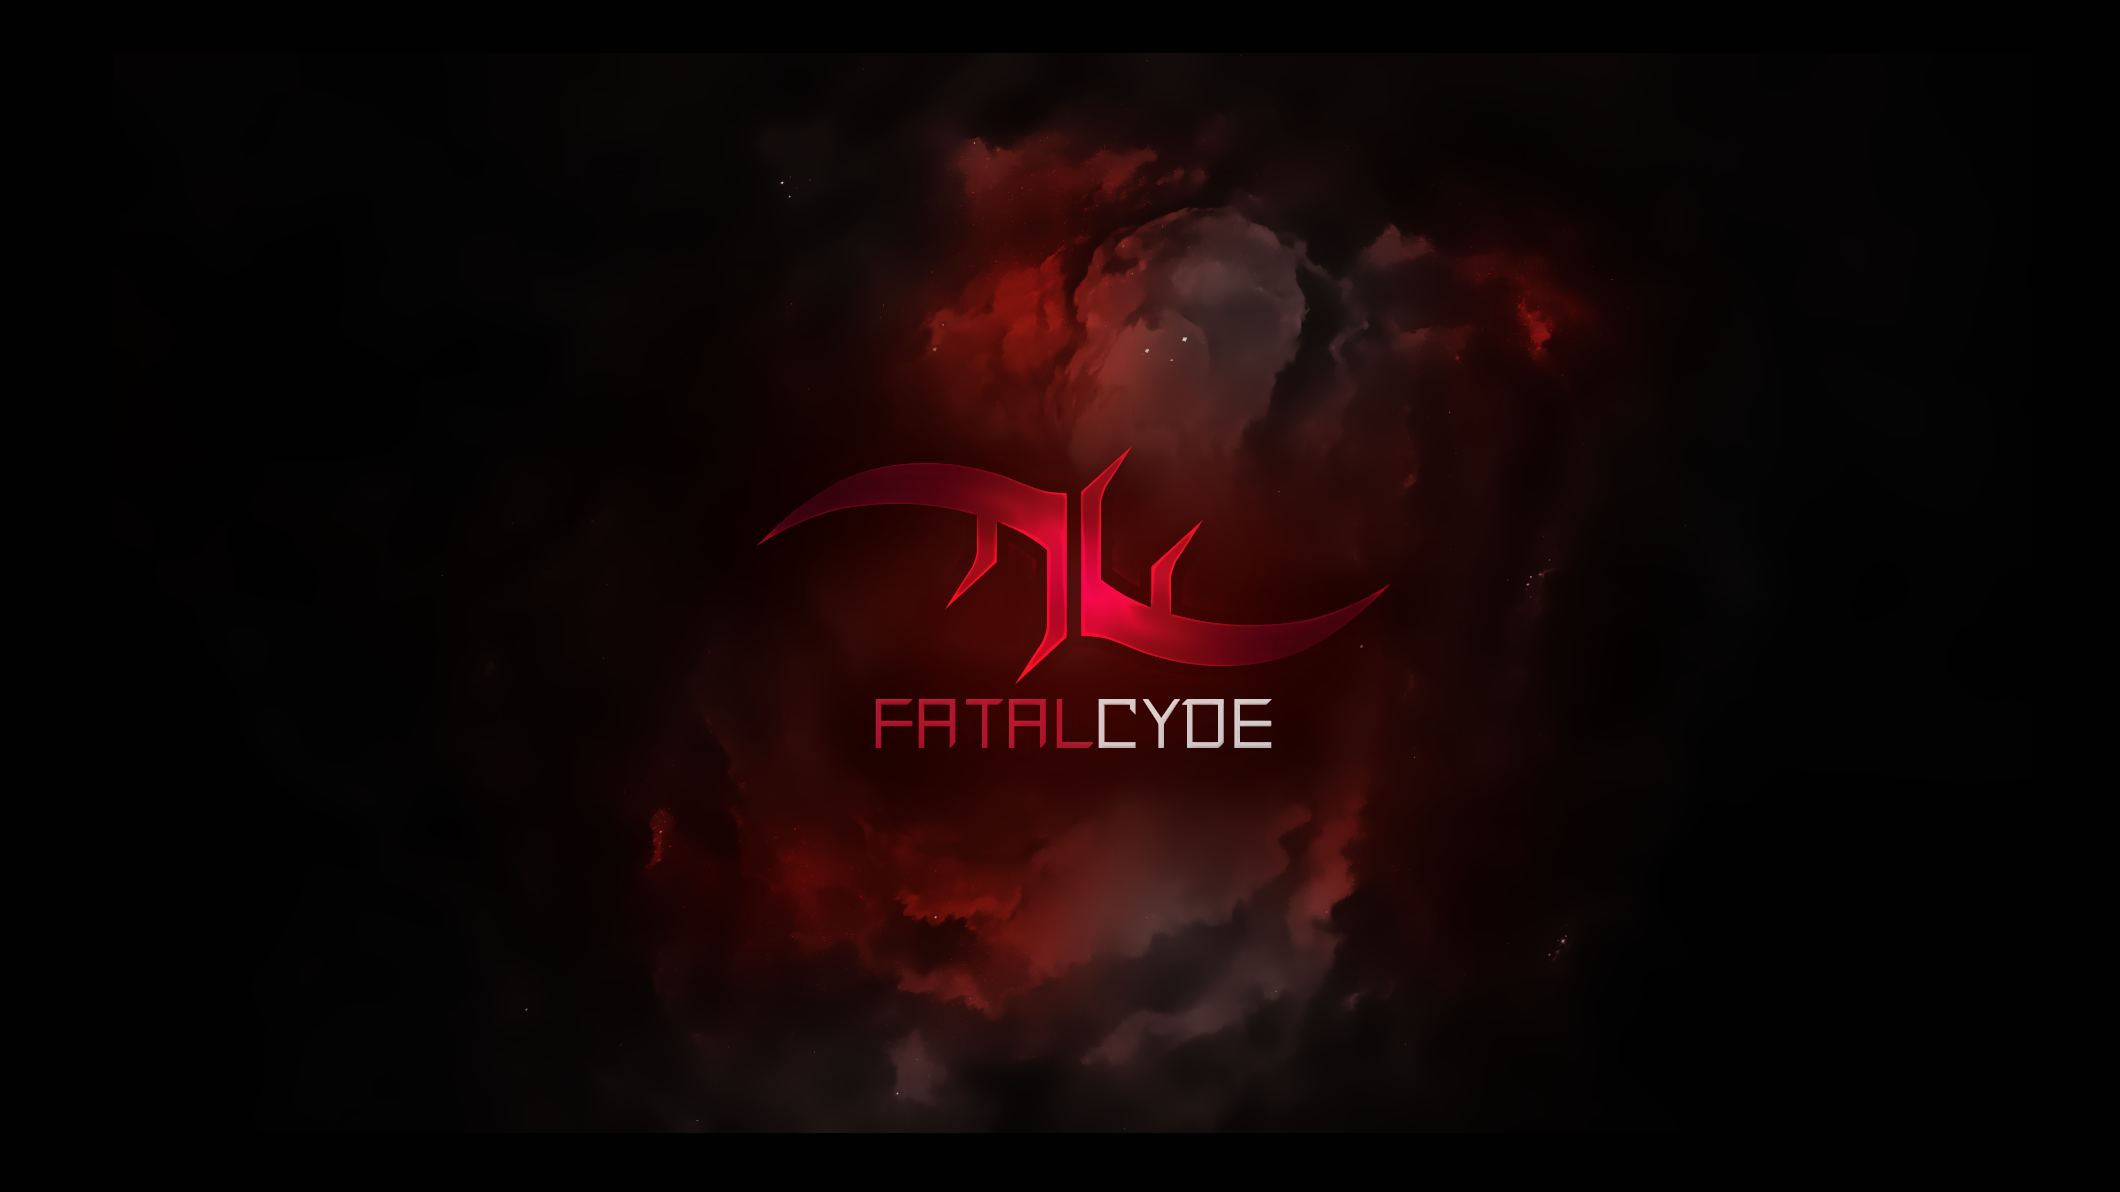 Fatalcyde Wallpaper_531